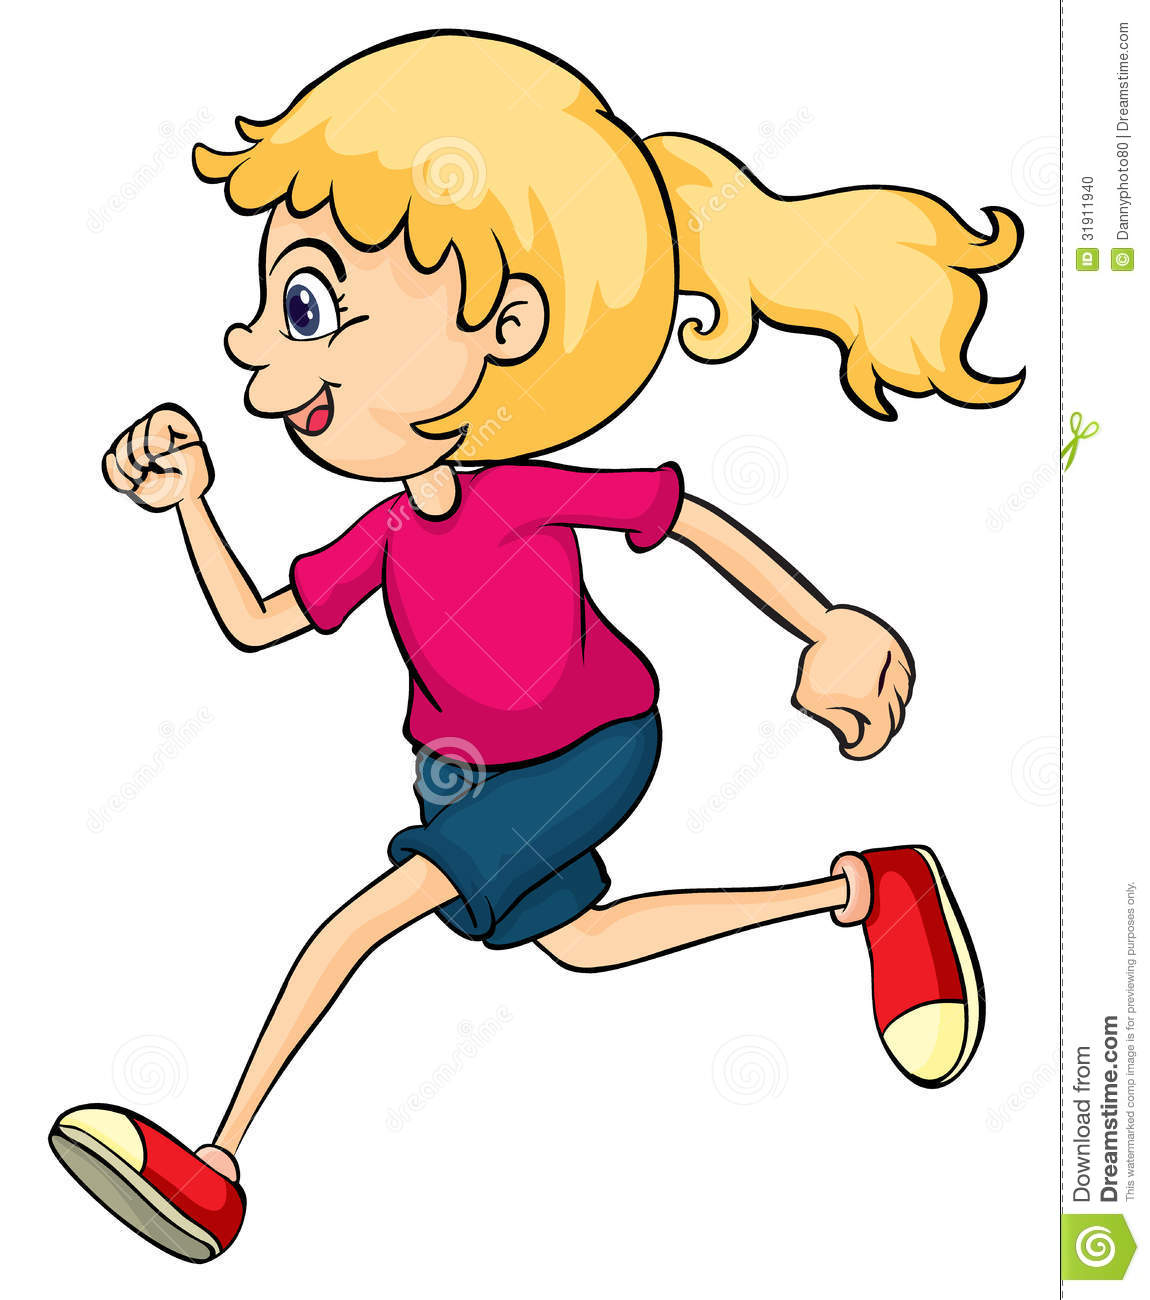 girl running clipart clipart panda free clipart images rh clipartpanda com clipart running running clip art black and white